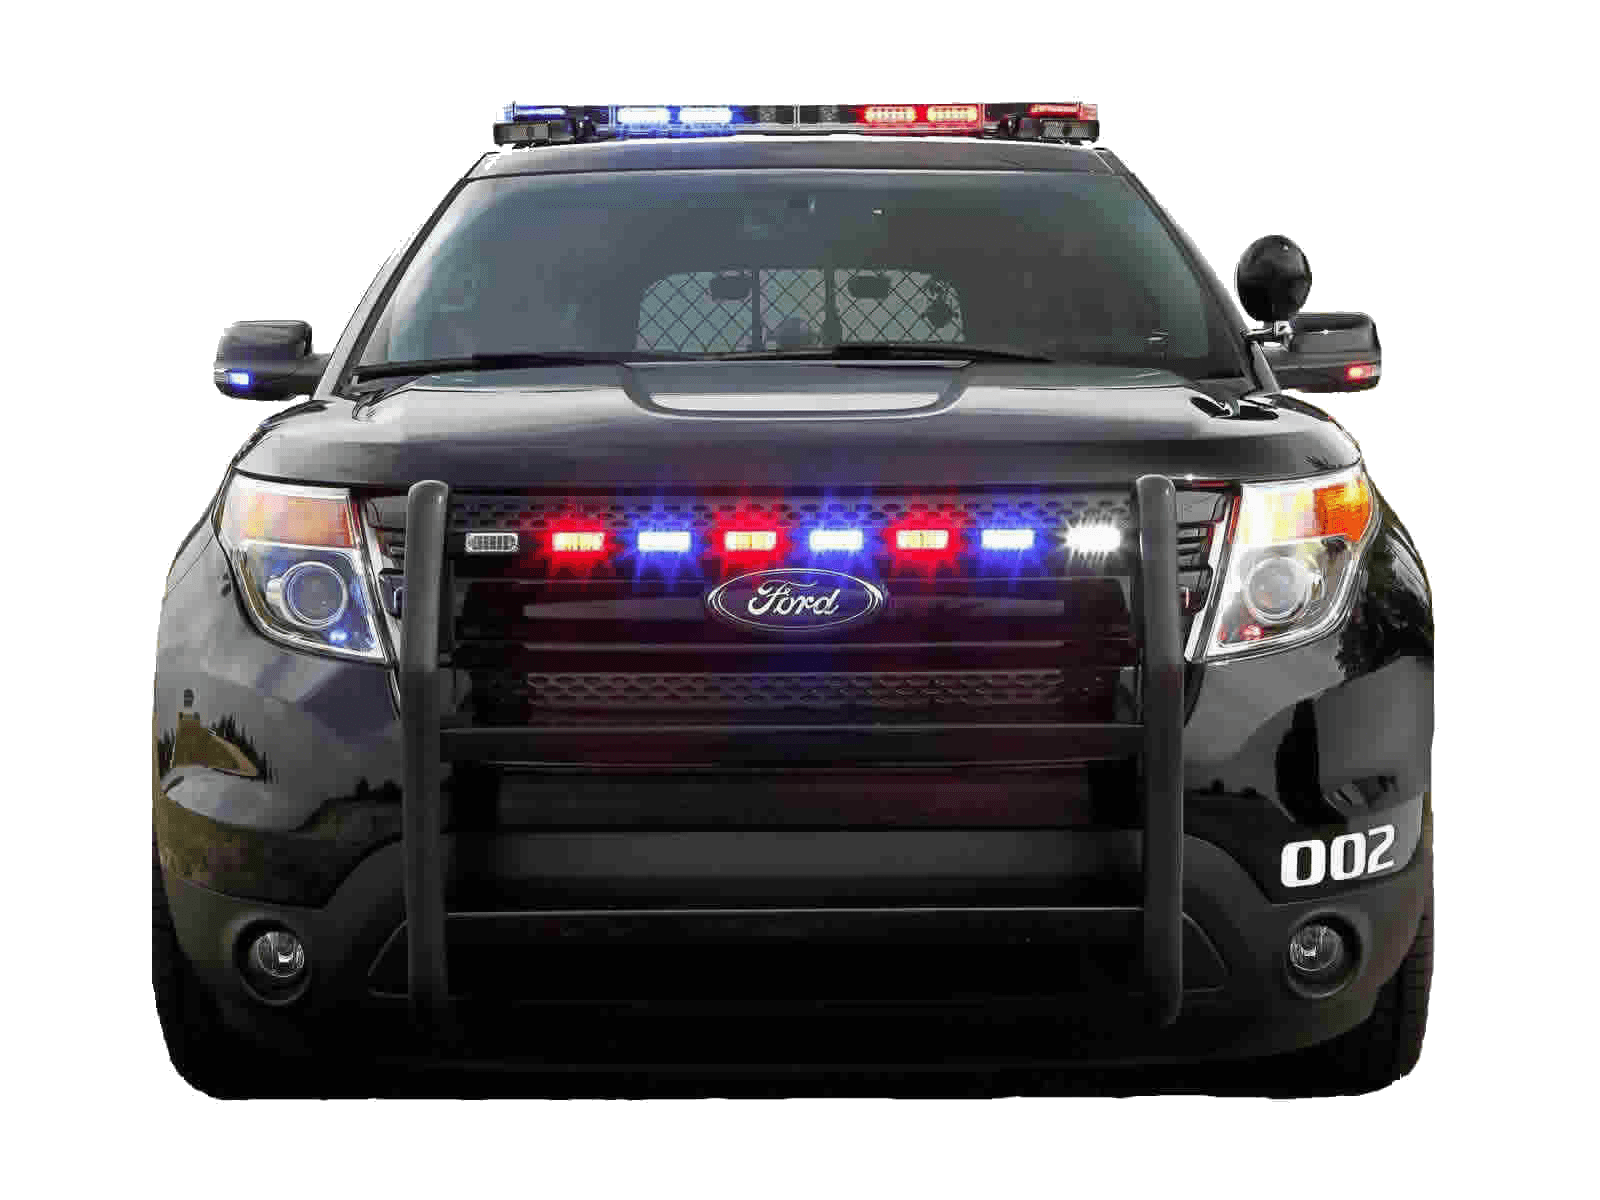 Police Car PNG Top View - 149903